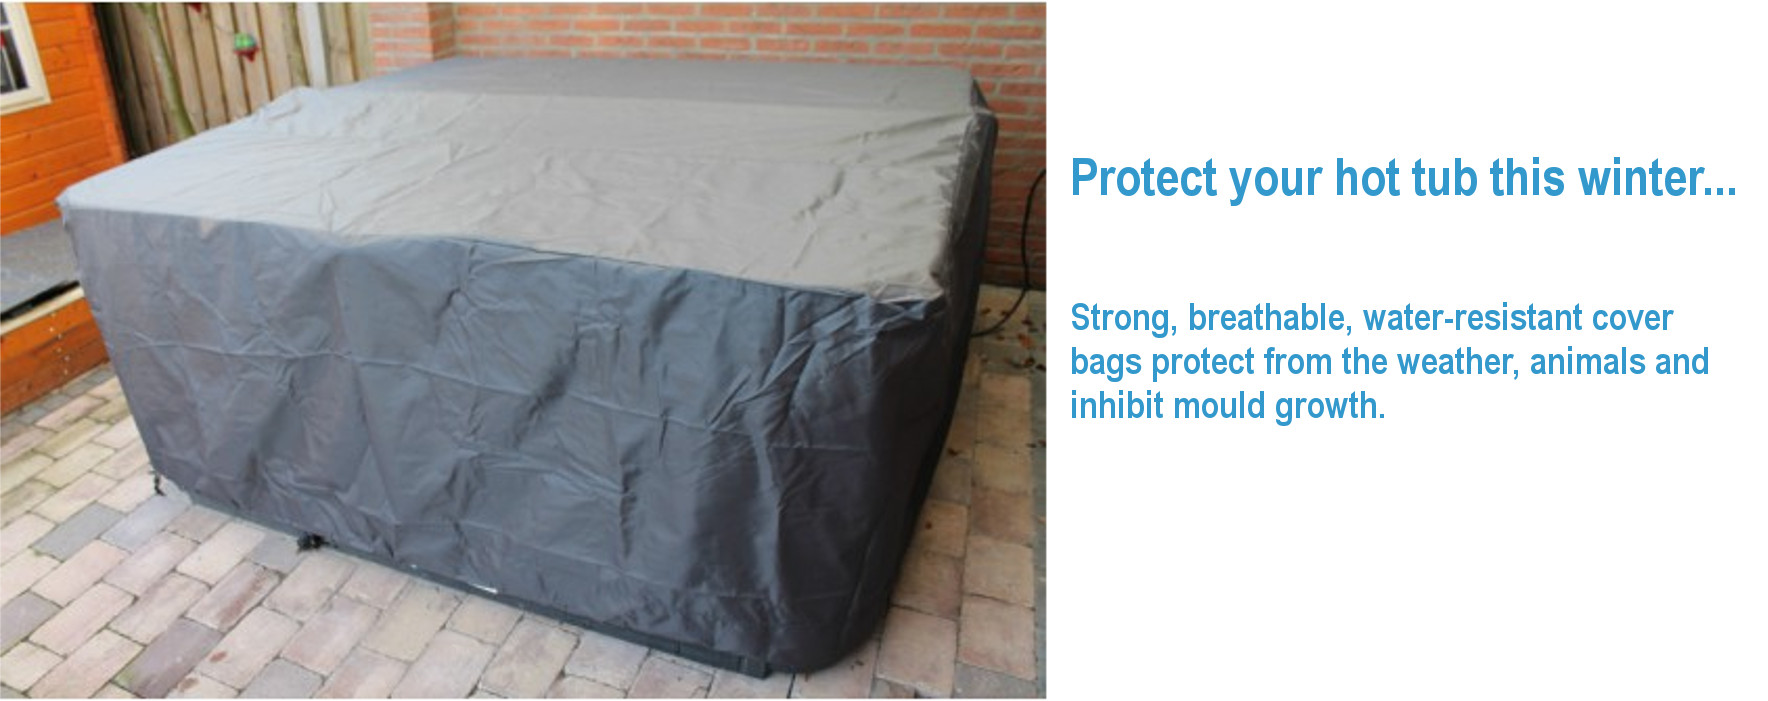 Hot tub protective bags